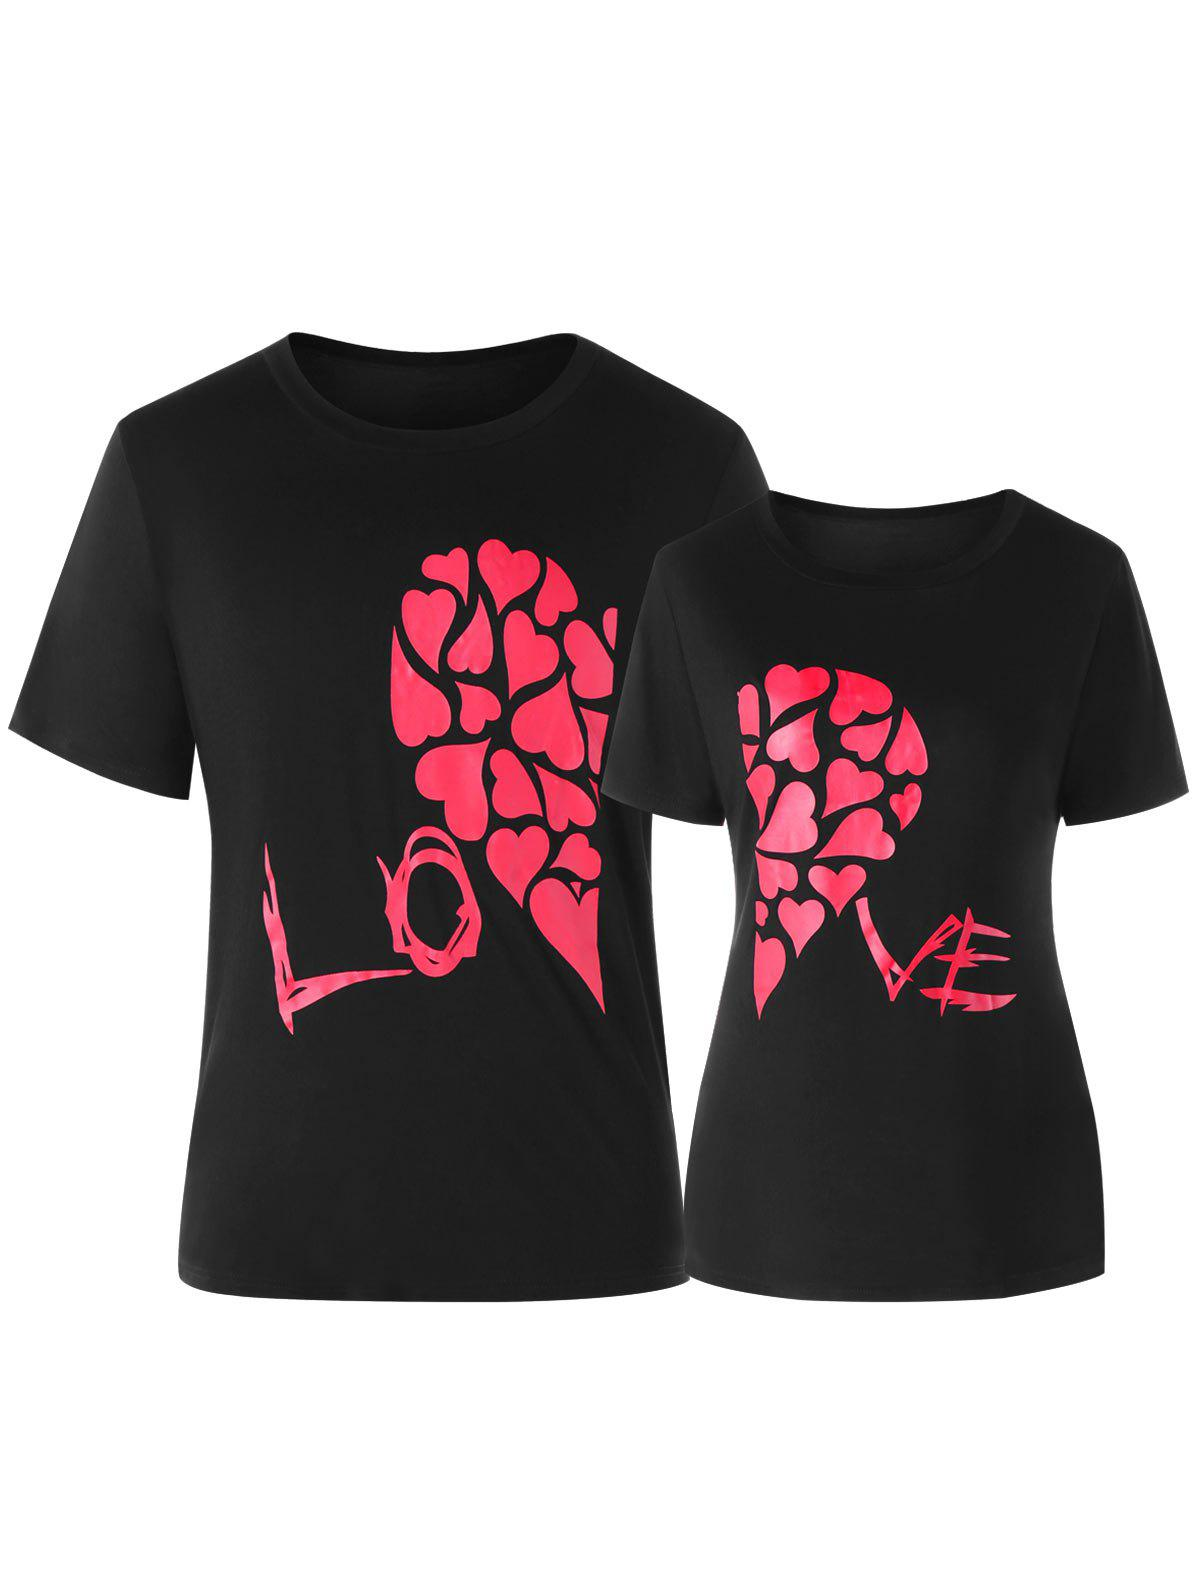 New Valentines Day Heart Print Matching Couple Short Sleeve T-shirt